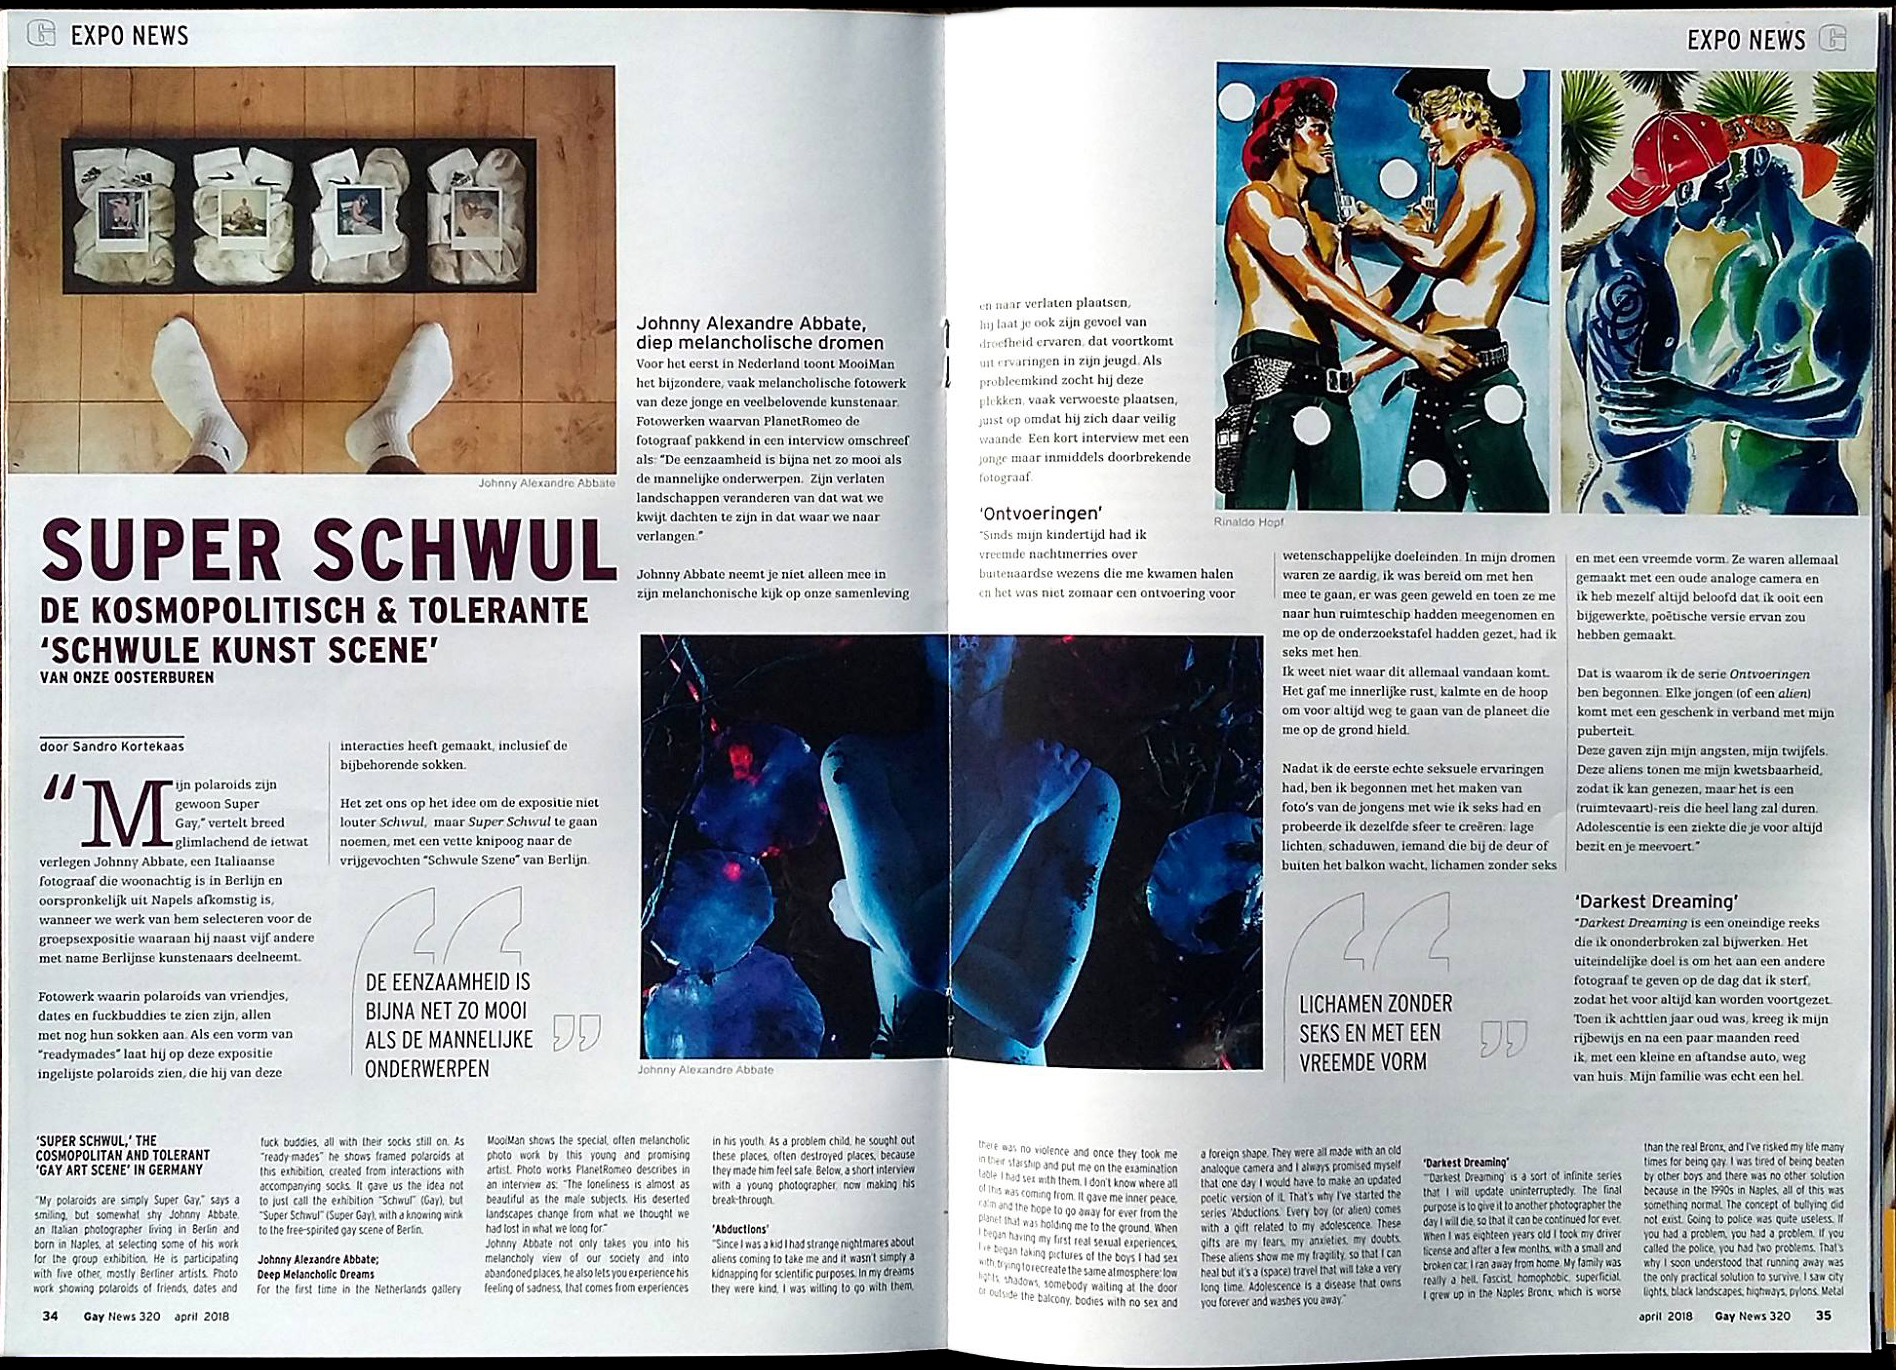 """Article for the exhibition """"Super Schwul"""" at MooiMan Gallery, Groningen, Netherlands. Issue 320, April 2018. http://www.gaynews.nl/"""